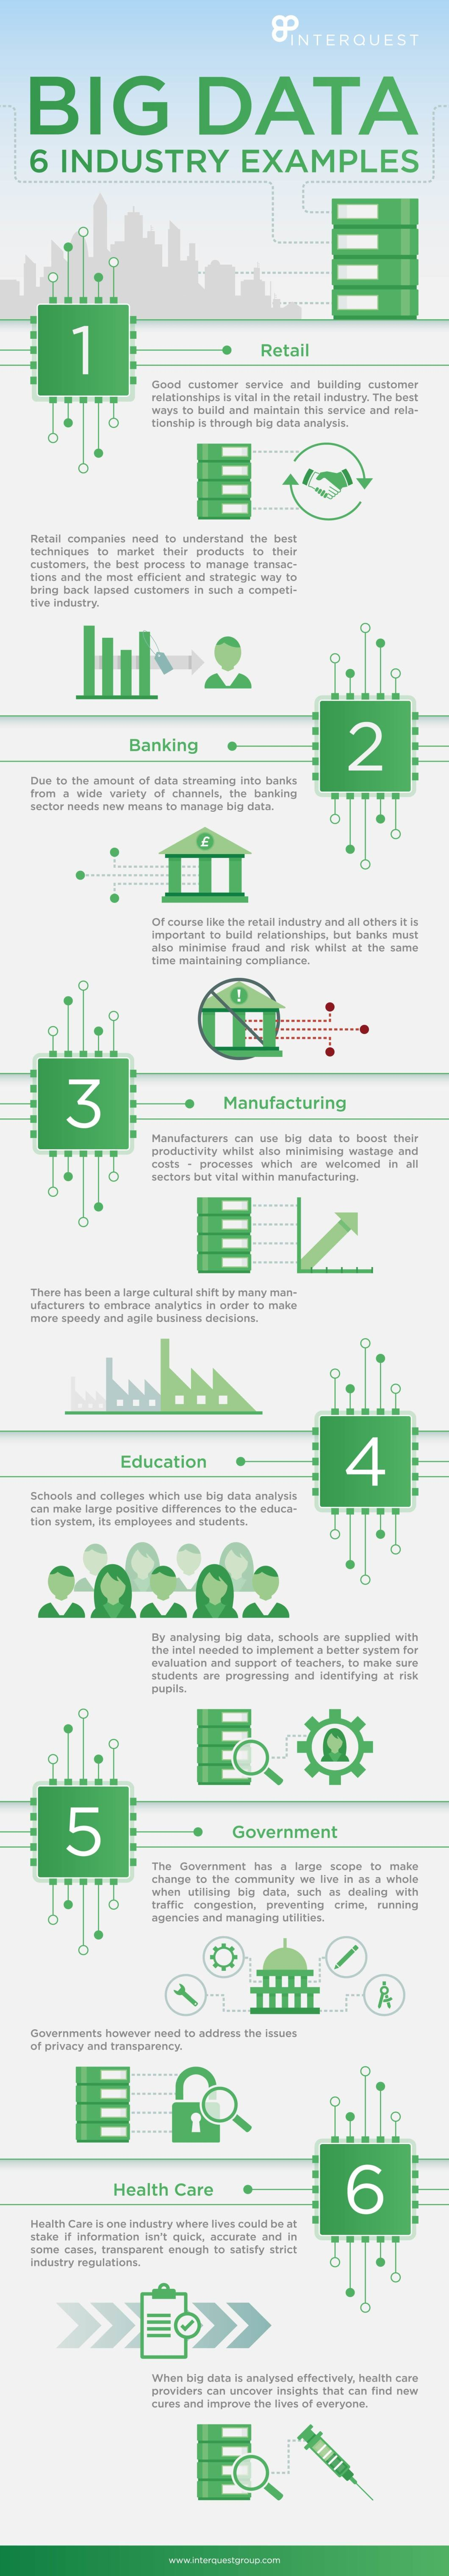 How Big Data Works in Industry: 6 Examples - Infographic